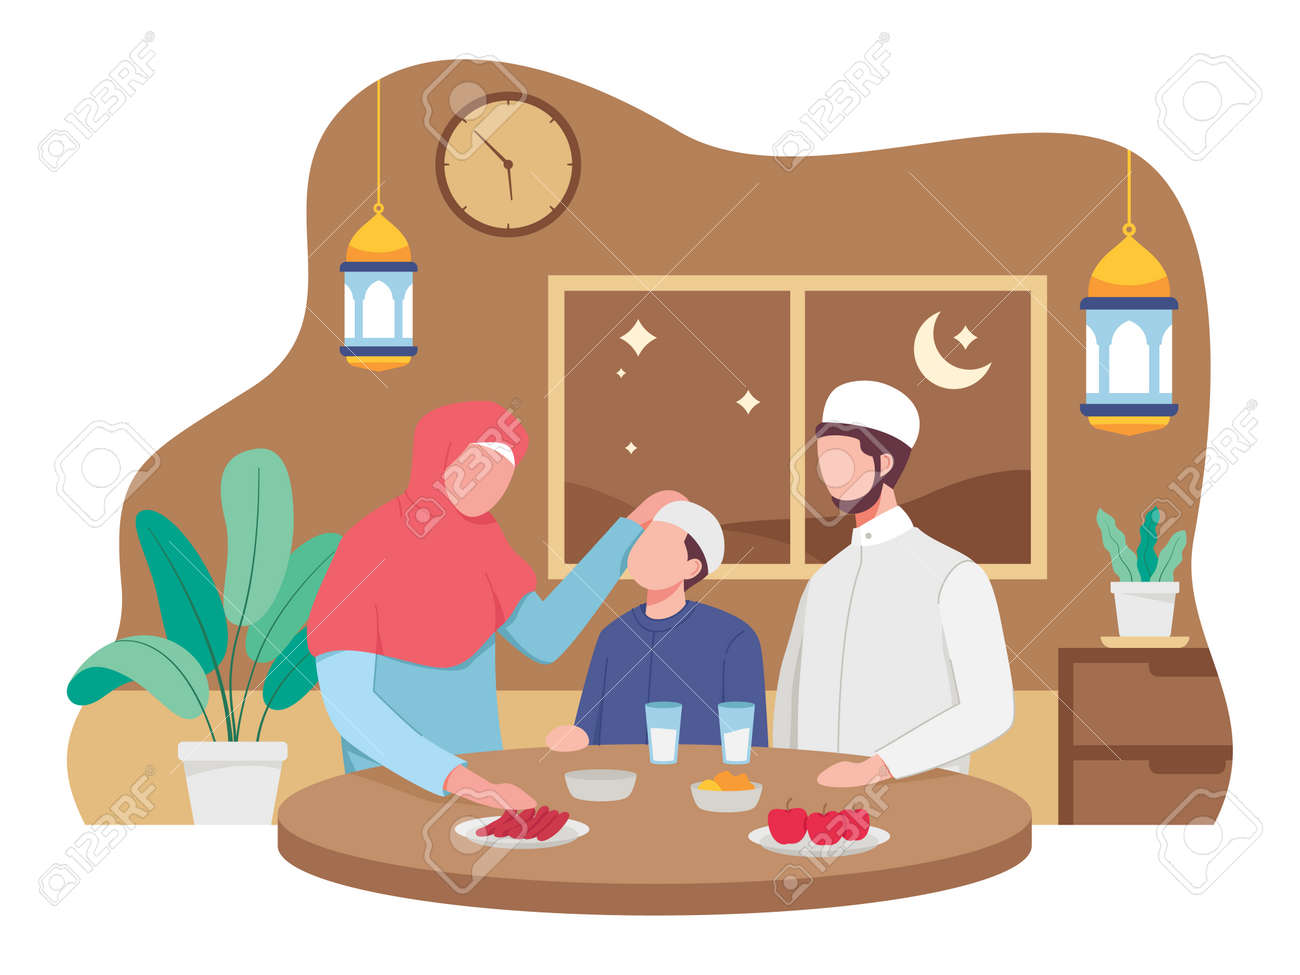 Muslim family eating Ramadan iftar together. Moslem family preparing iftar meal. Vector illustration in a flat style - 168291071